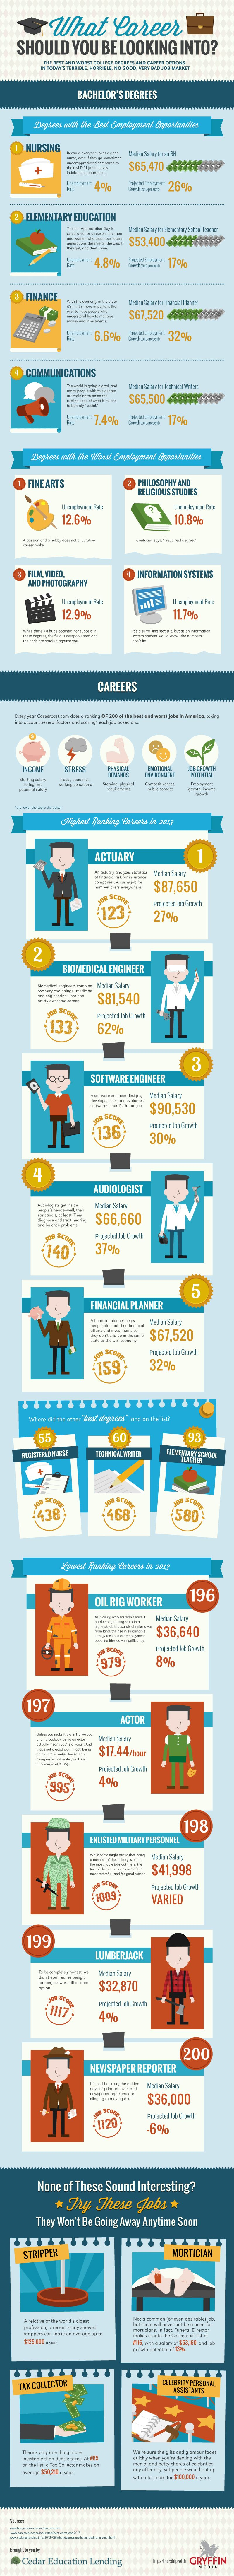 the best and worst careers based on job outlook and work the best and worst careers based on job outlook and work environment